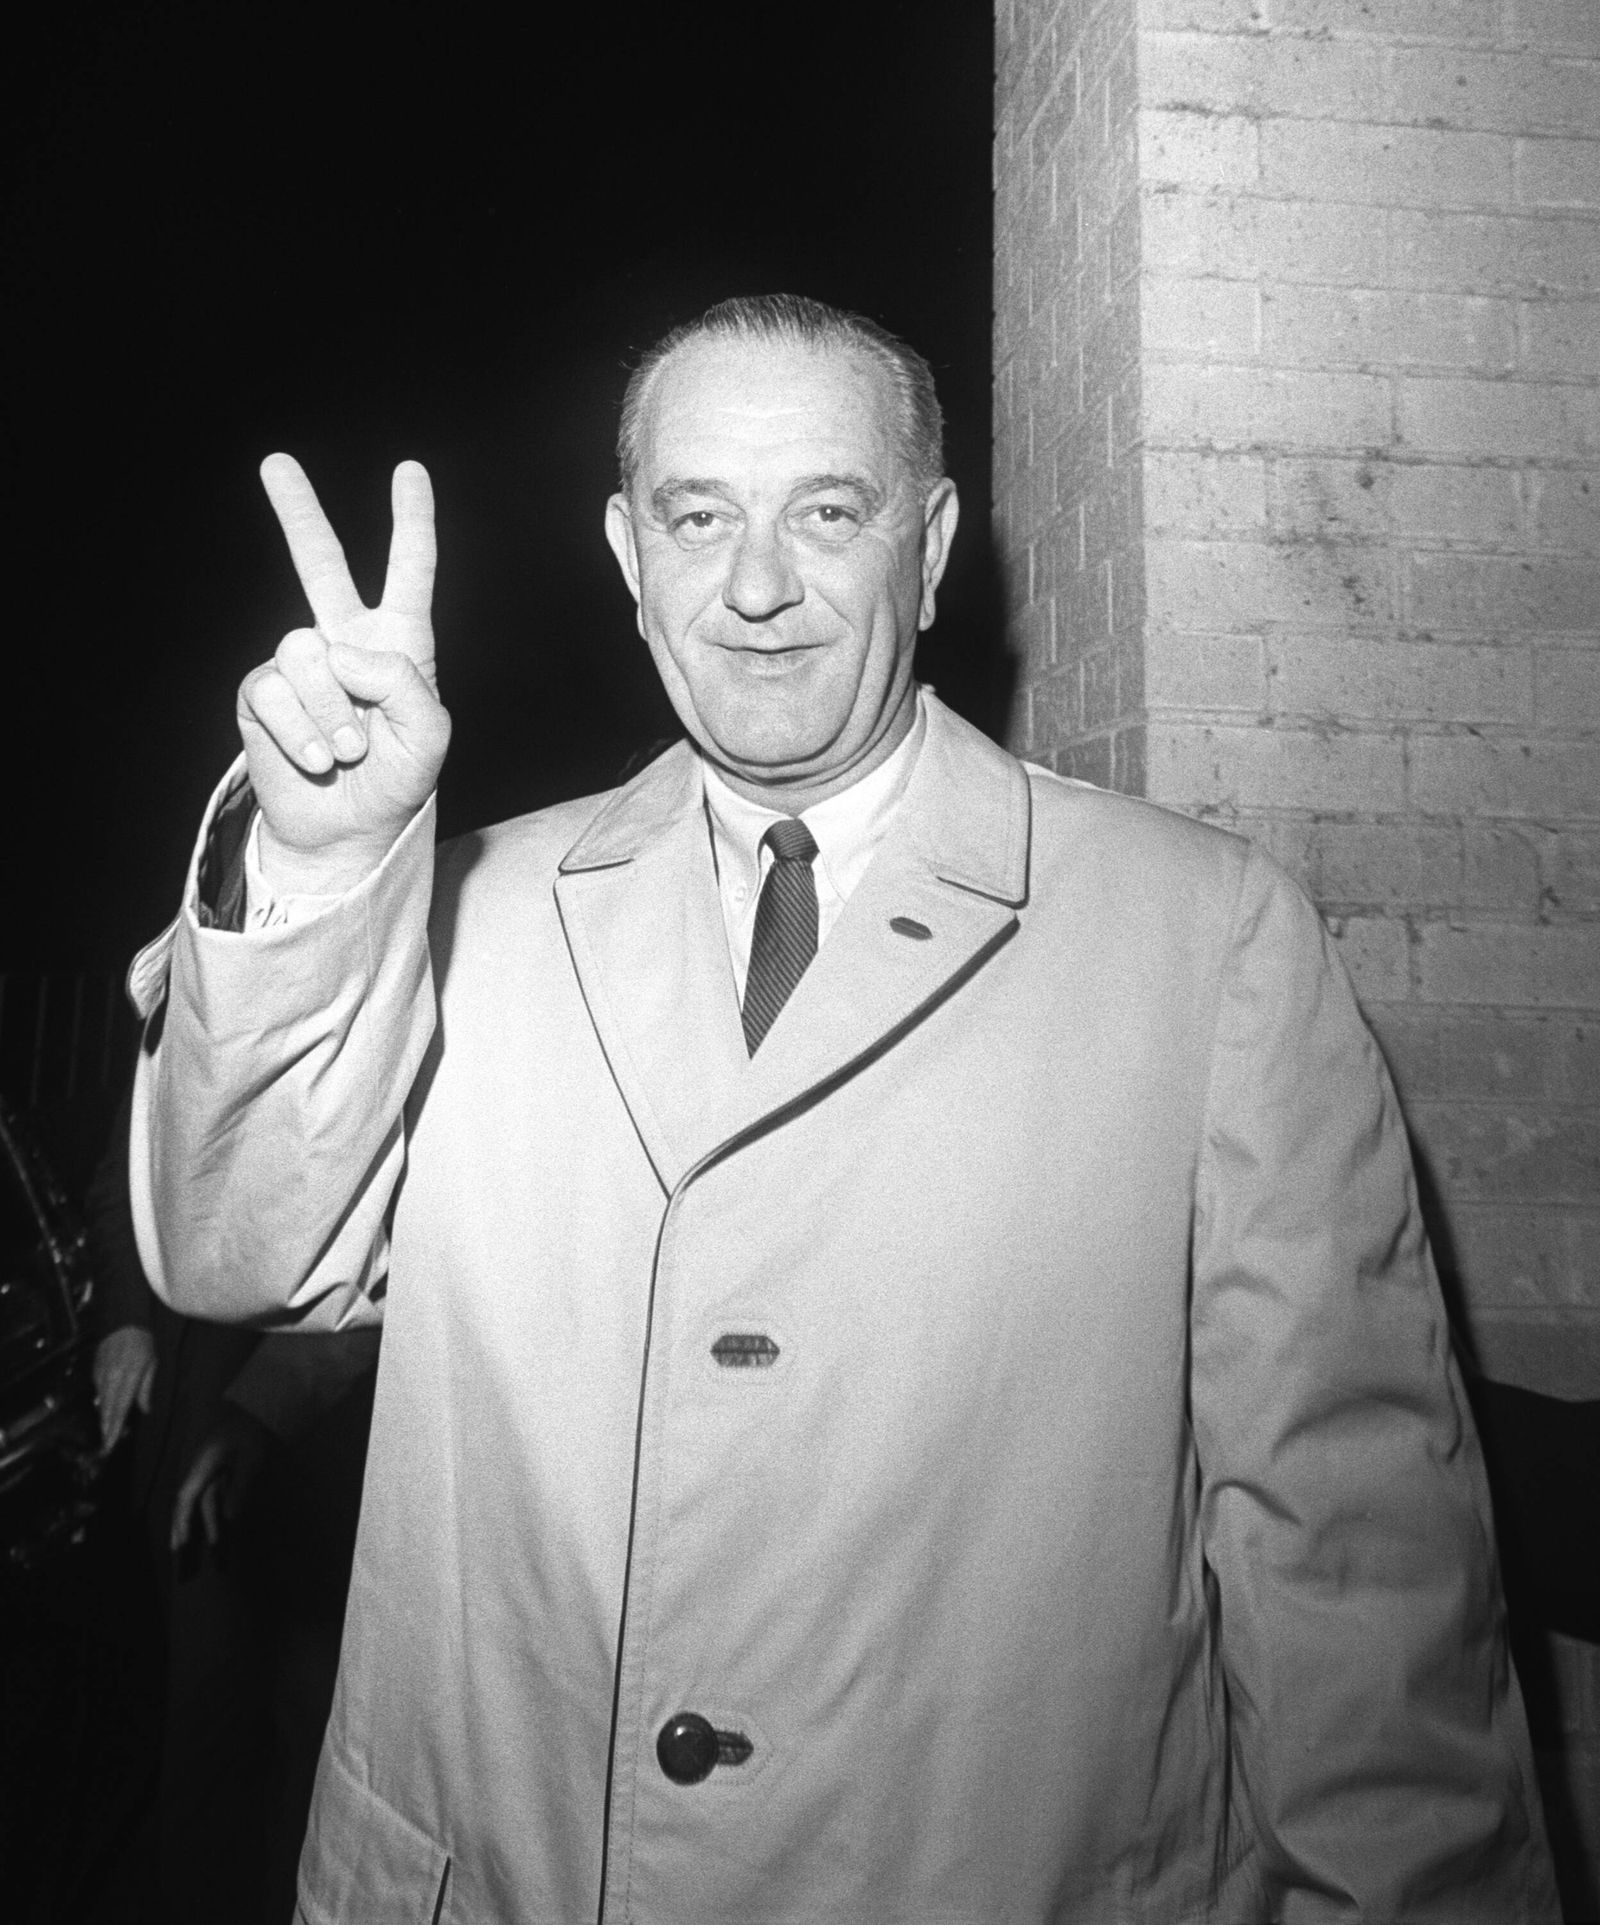 1964 Presidential Election. Lyndon Johnson gives the victory sign at the Driskill Hotel, where he waited to hear the ele